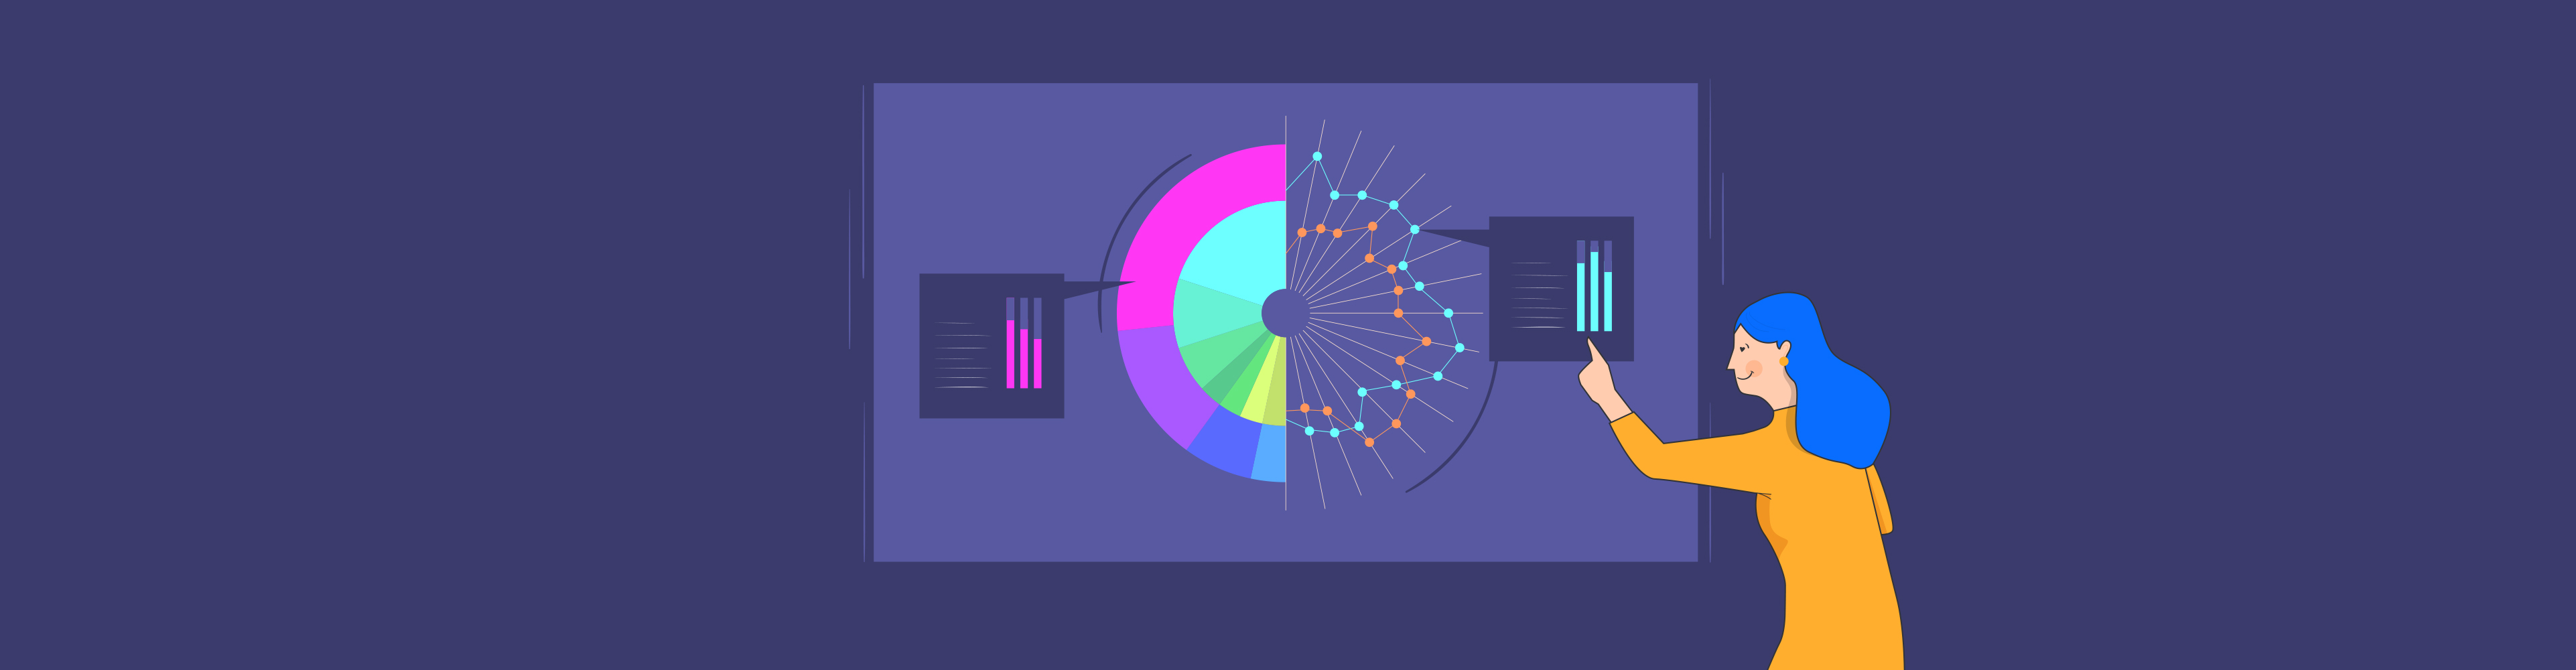 best-data-visualizations-2019-header-wide